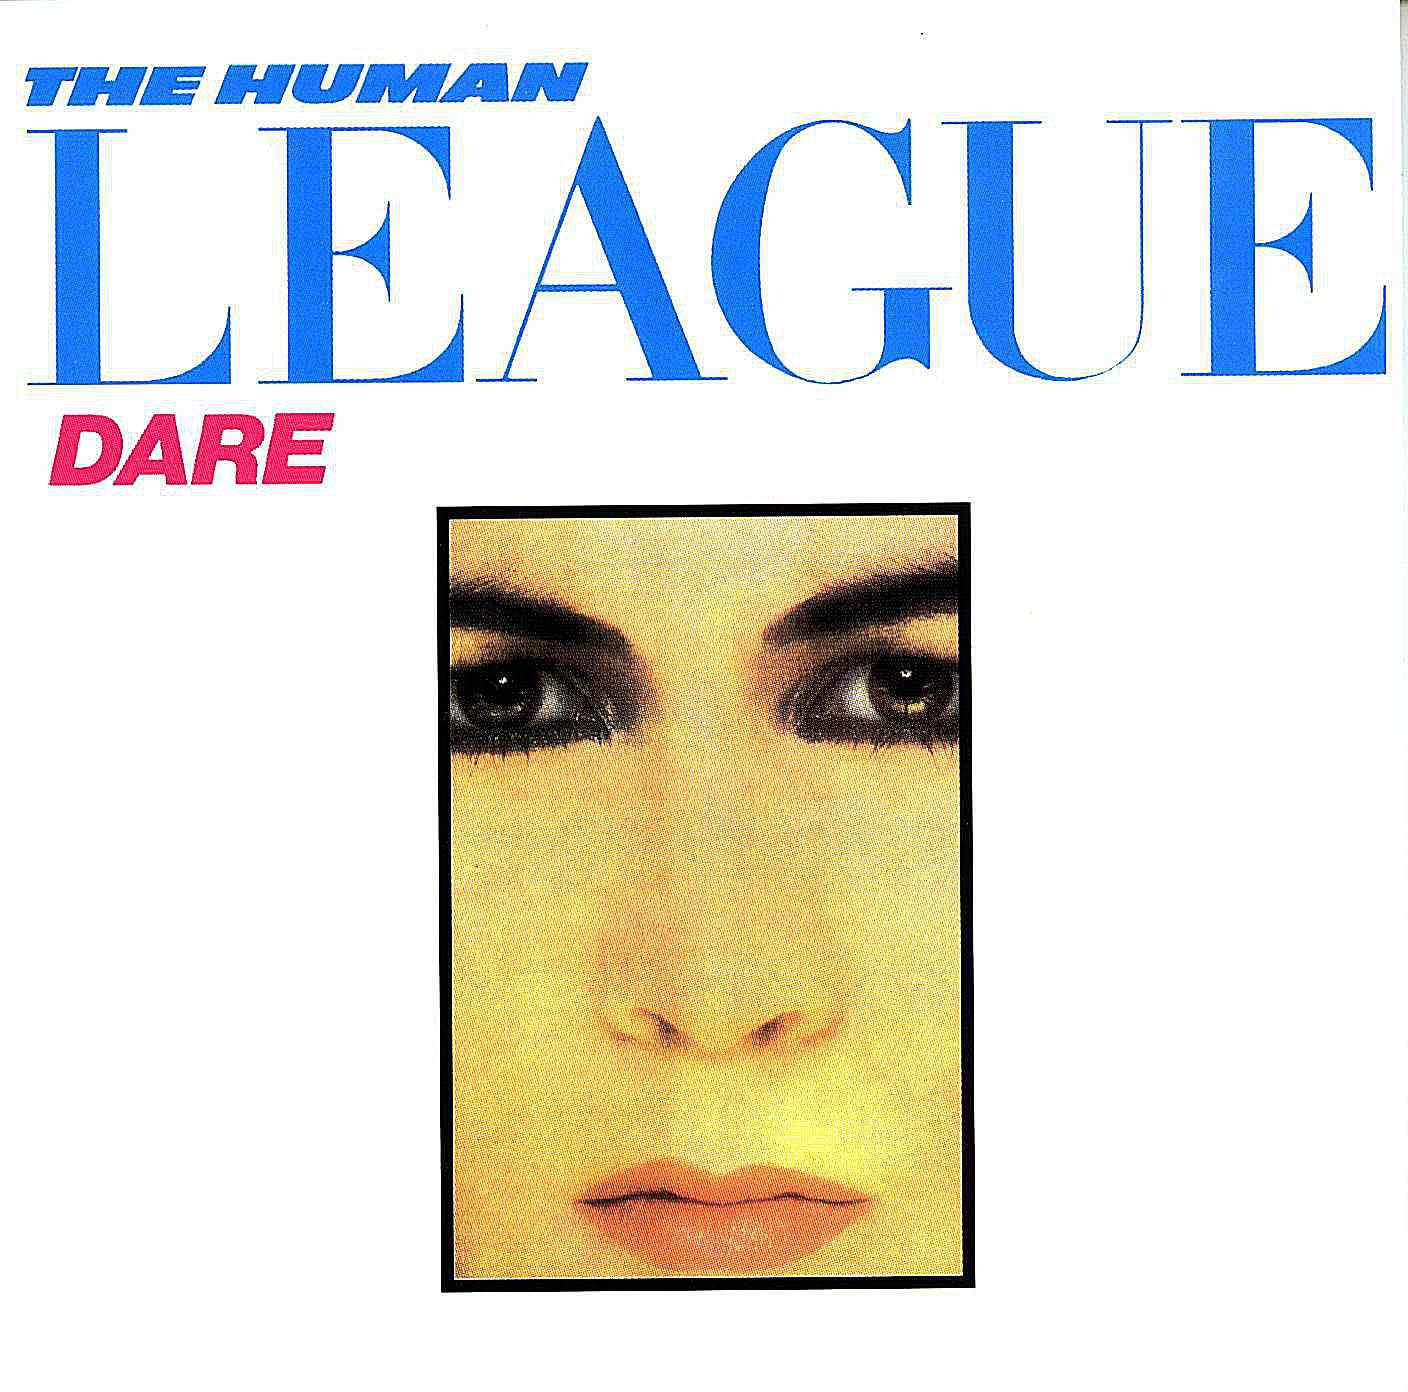 Top '80s Songs of the Synth Pop Band The Human League